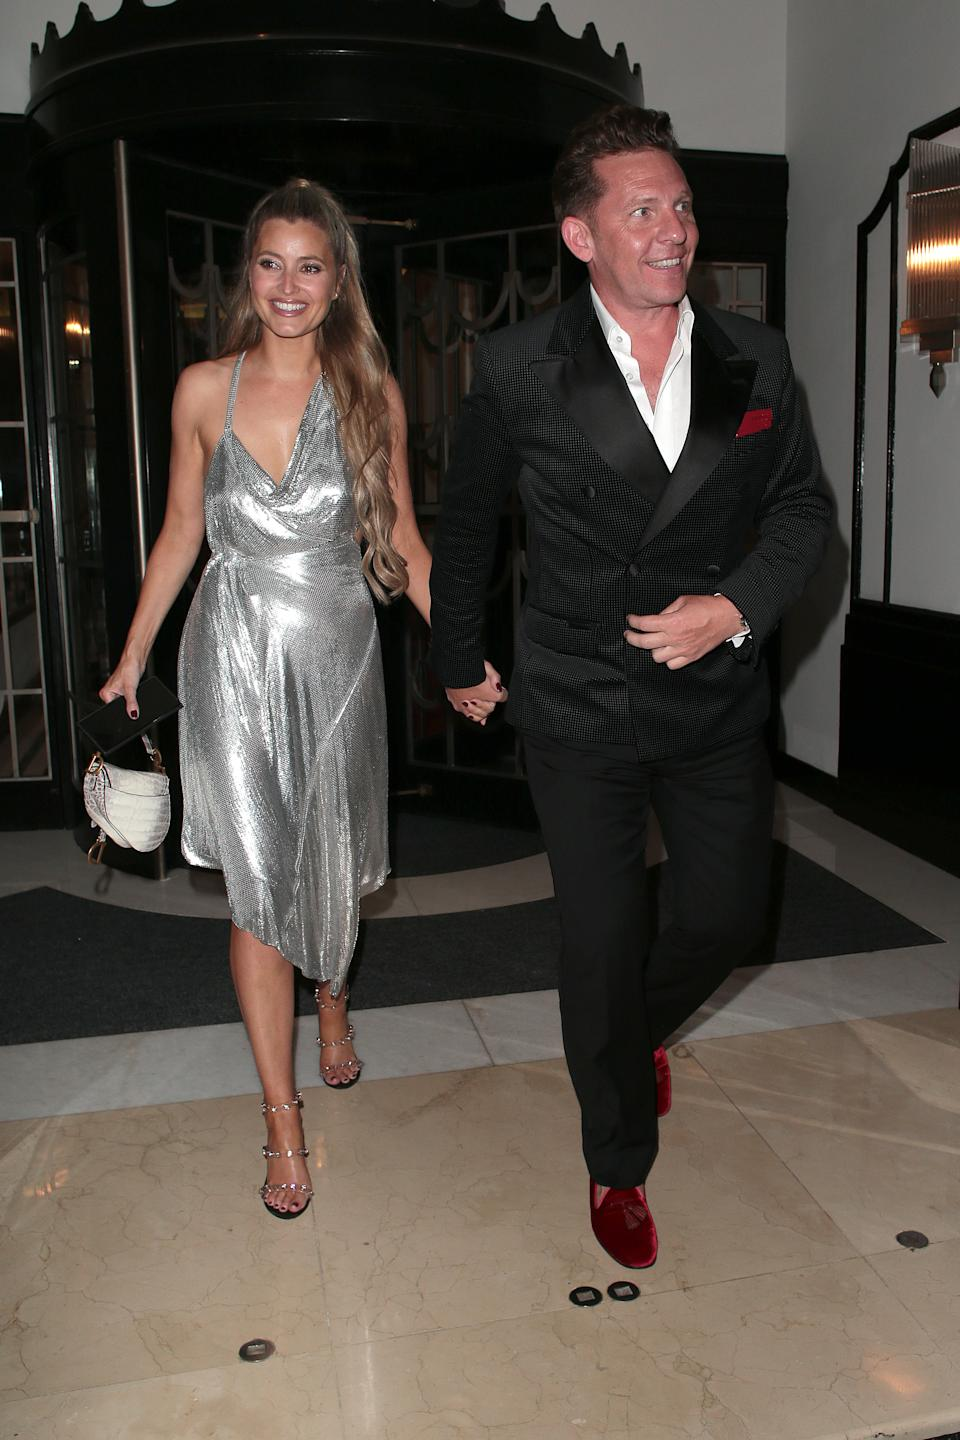 Holly Valance and Nick Candy are seen attending David Walliams' 50th birthday party at Claridge's hotel in Mayfair on September 04, 2021 in London, England. (Photo by Ricky Vigil/GC Images)